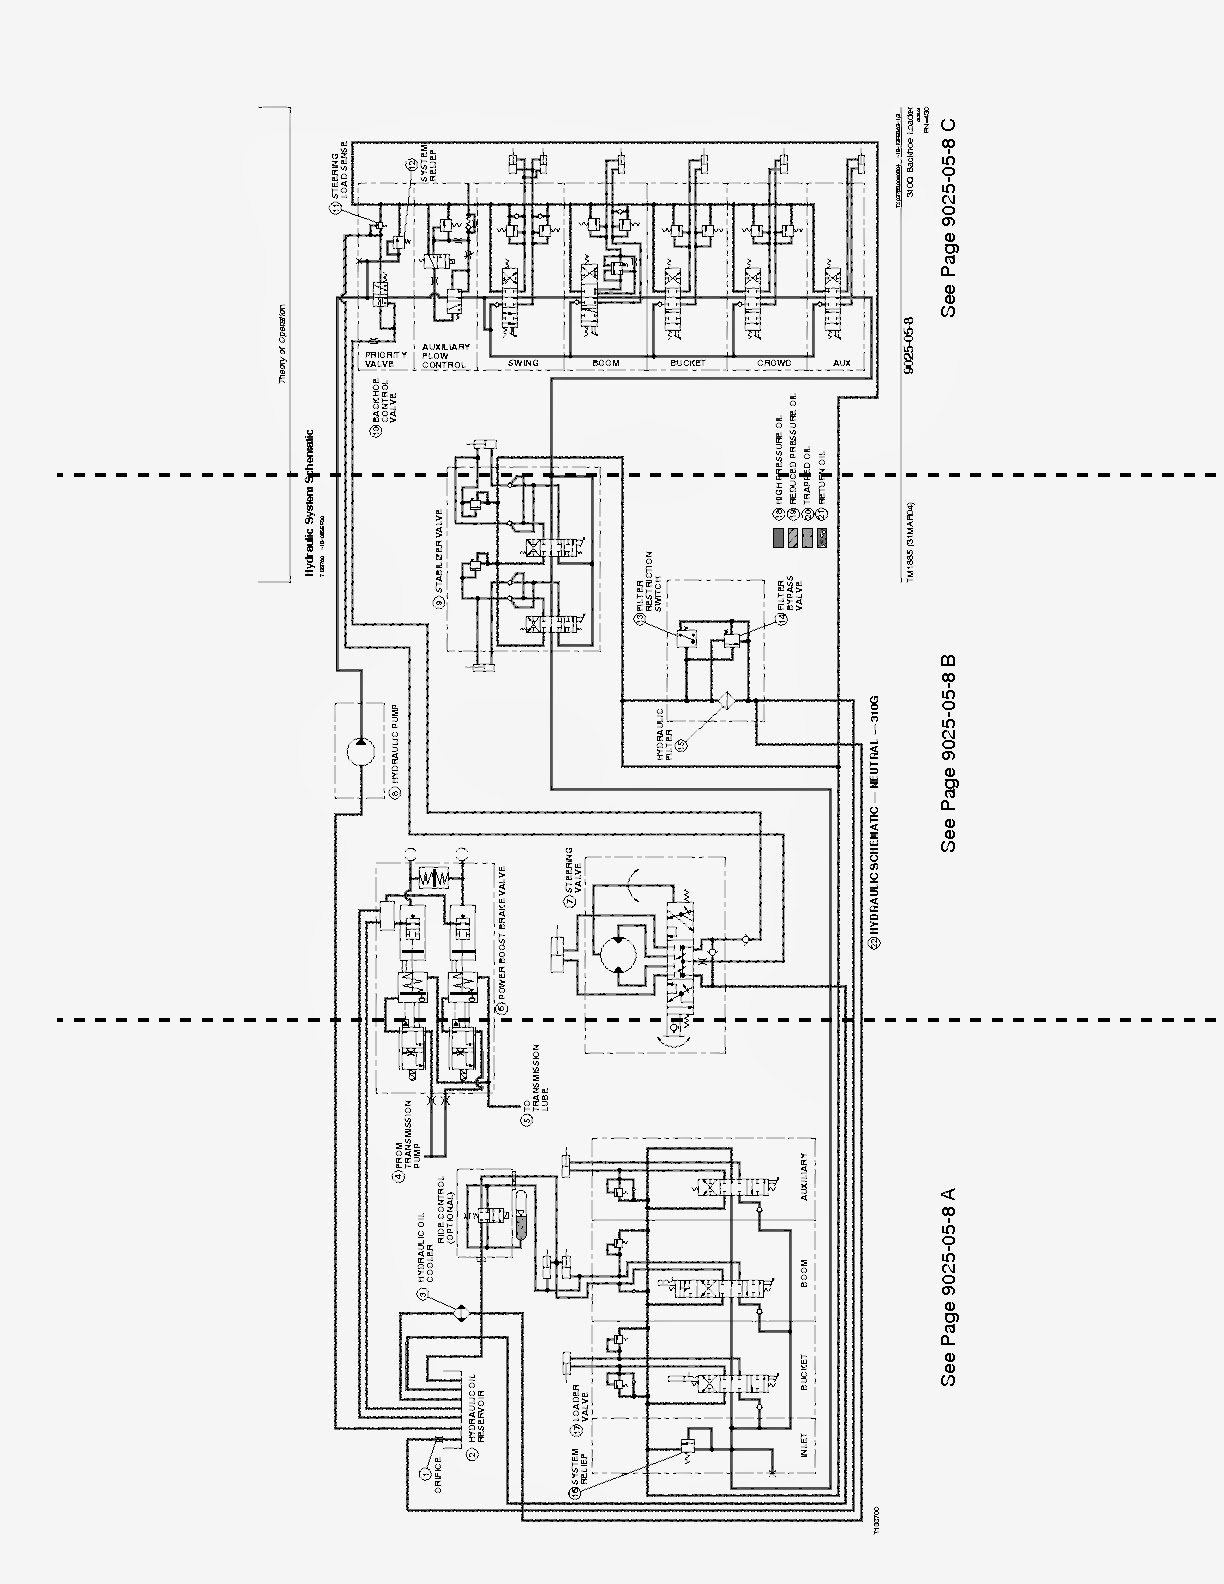 2003 Harley Davidson Fatboy Wiring Diagram Another Blog About Html